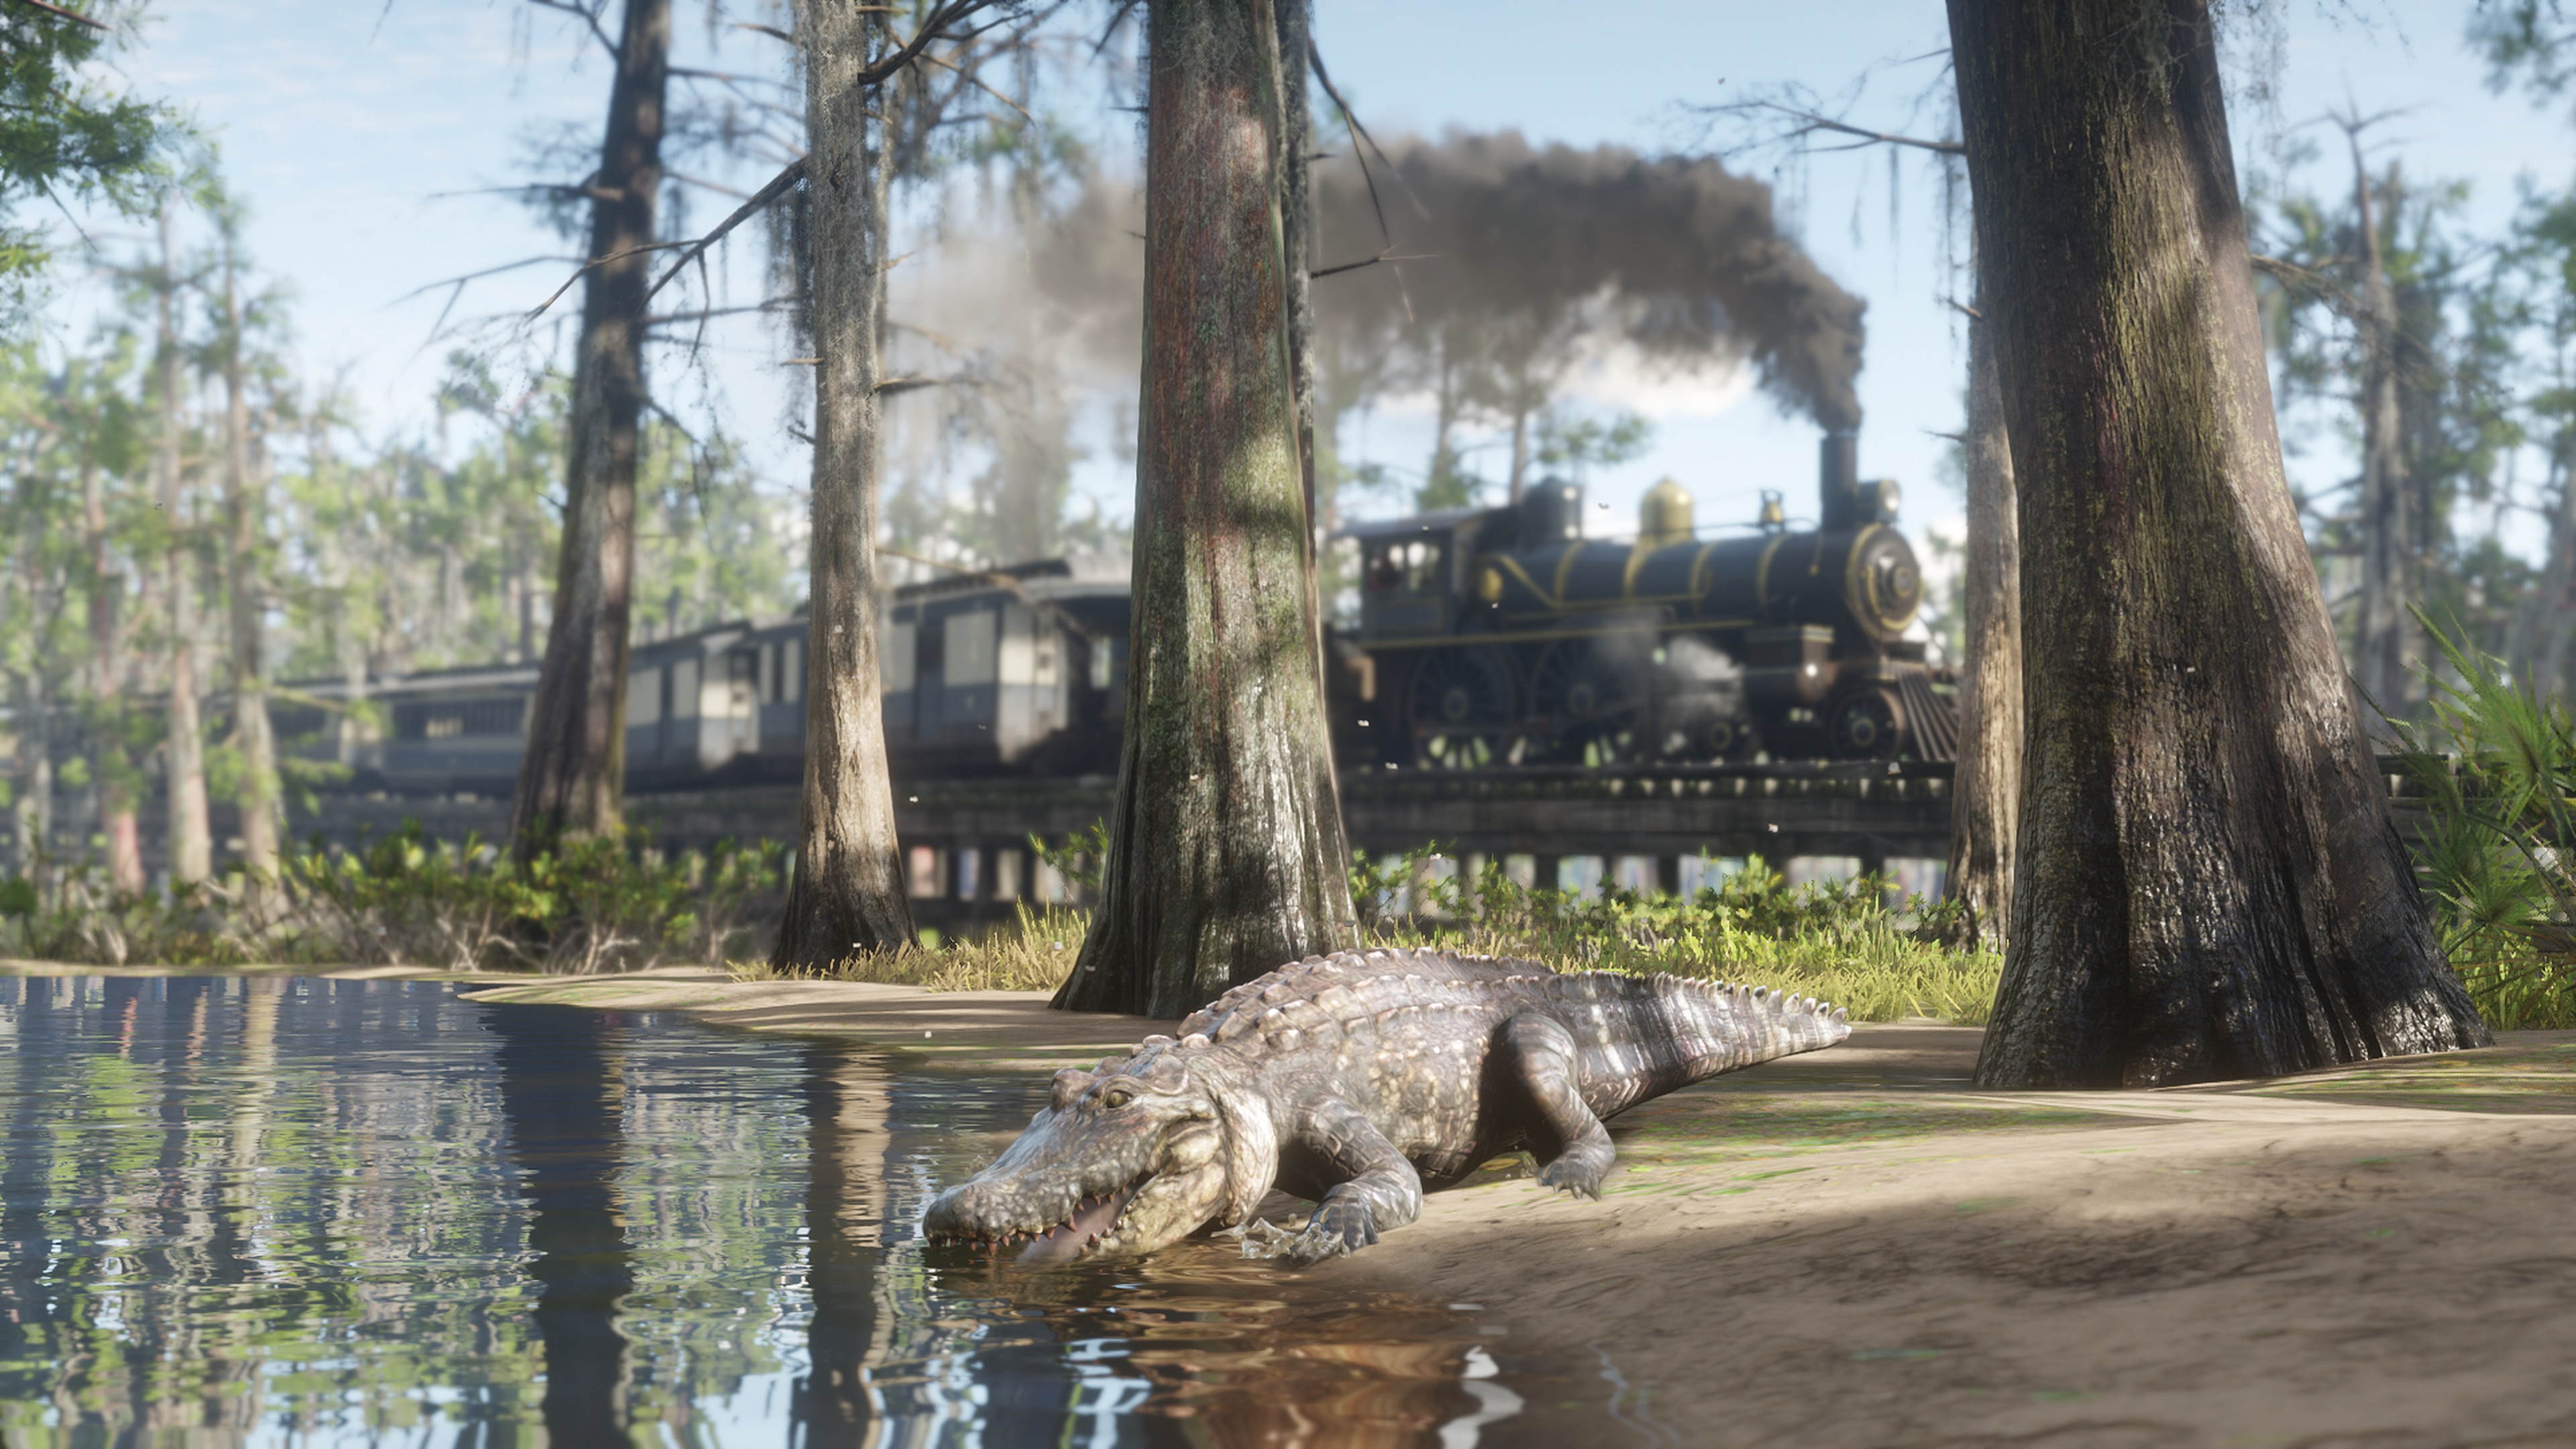 Red Dead Redemption 2: where to find the derailed train and hidden treasure